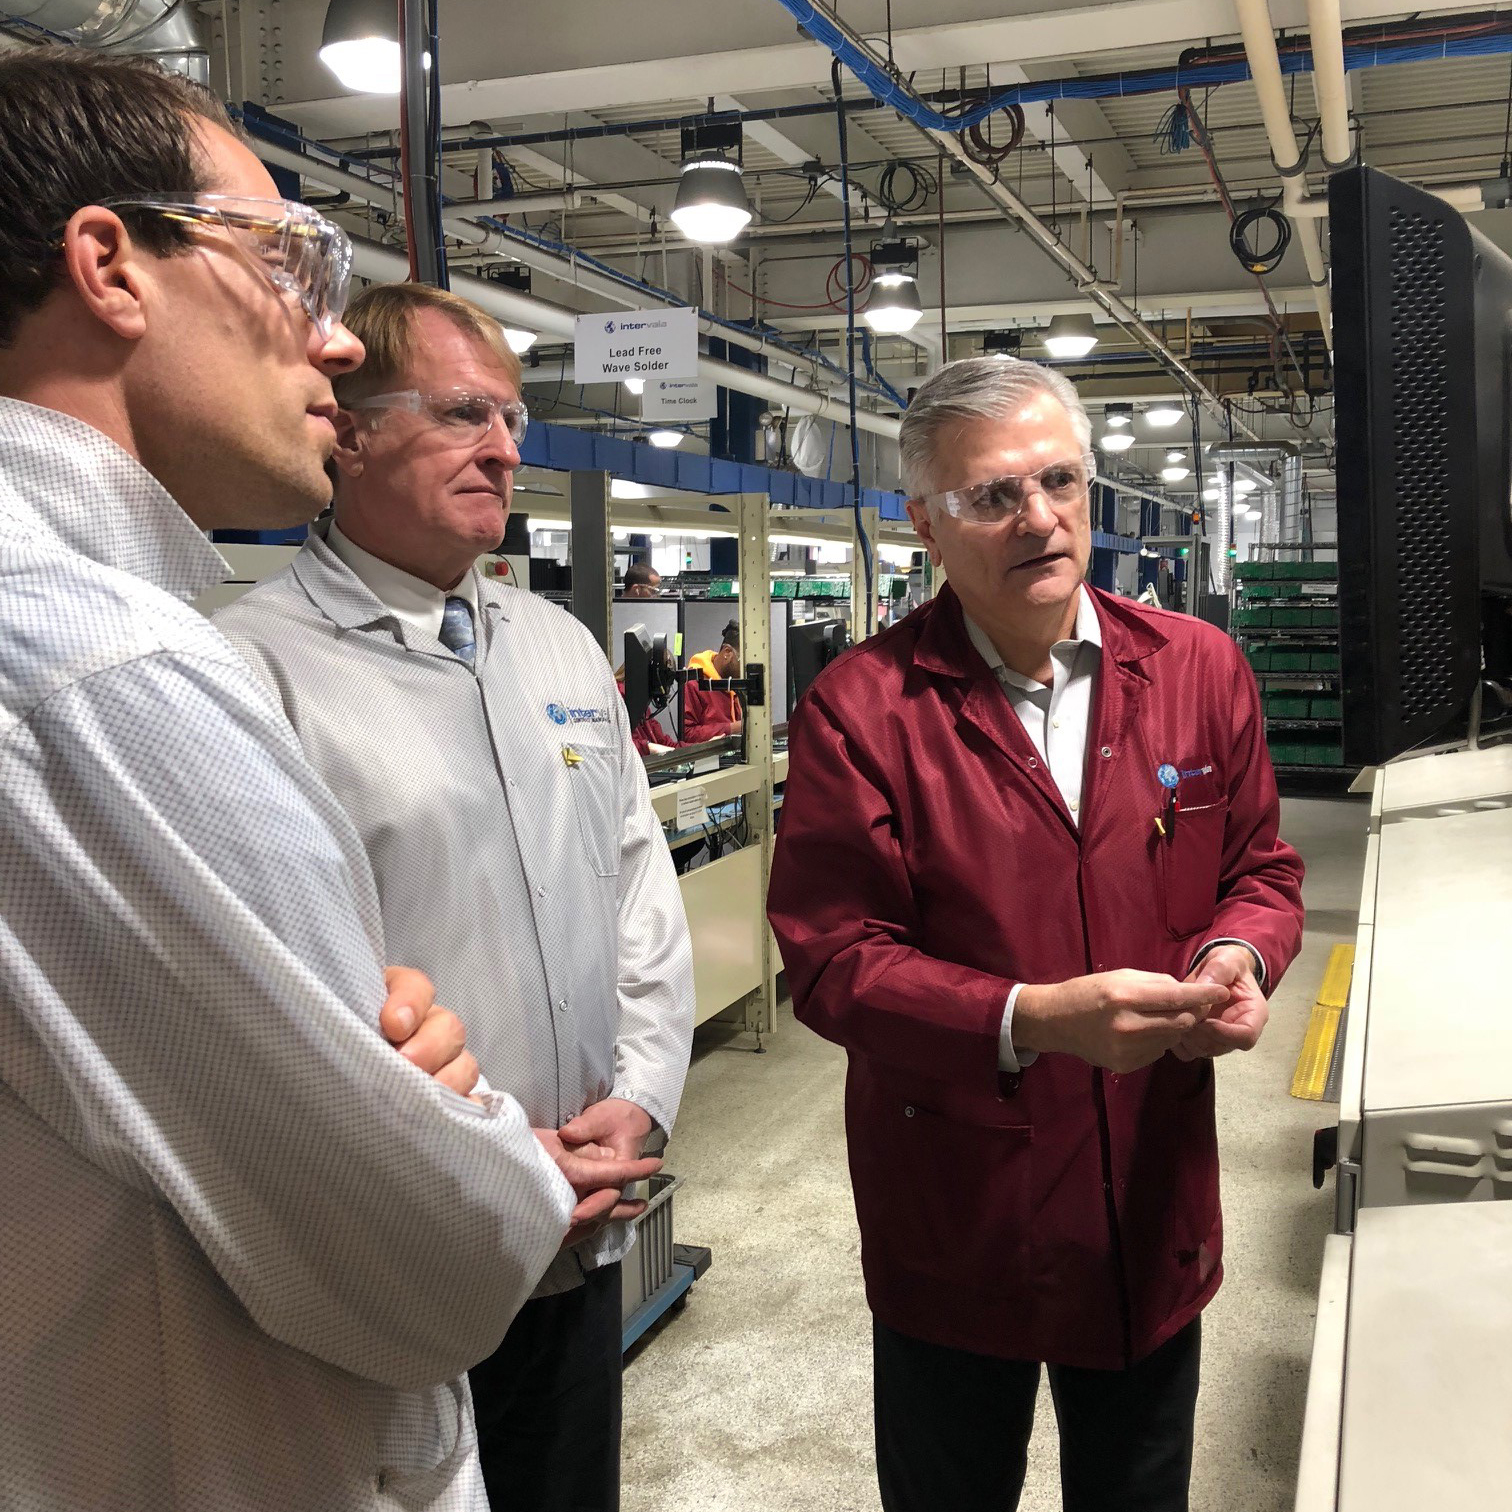 Director of Operations Joe Benz, right, demonstrates the capabilities of Intervala's state-of-the-art surface mount technology lines for Allegheny County Director of Economic Development Lance Chimka, left, and County Executive Rich Fitzgerald.